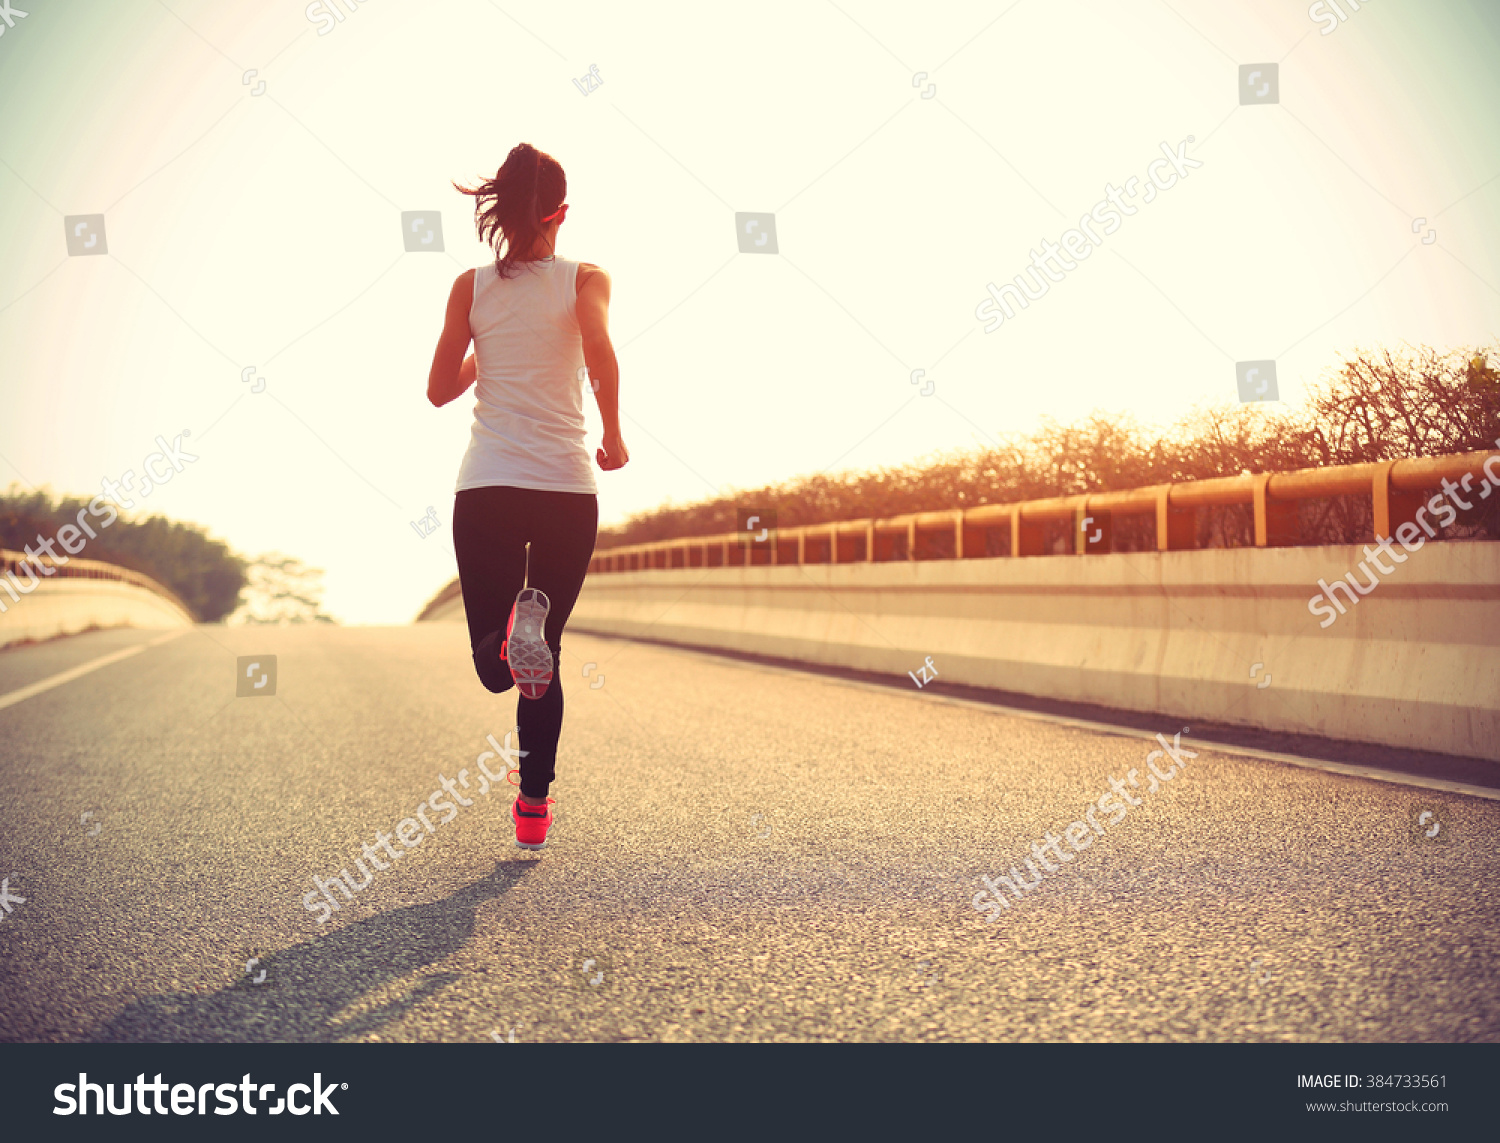 young fitness woman trail runner running  on city road #384733561